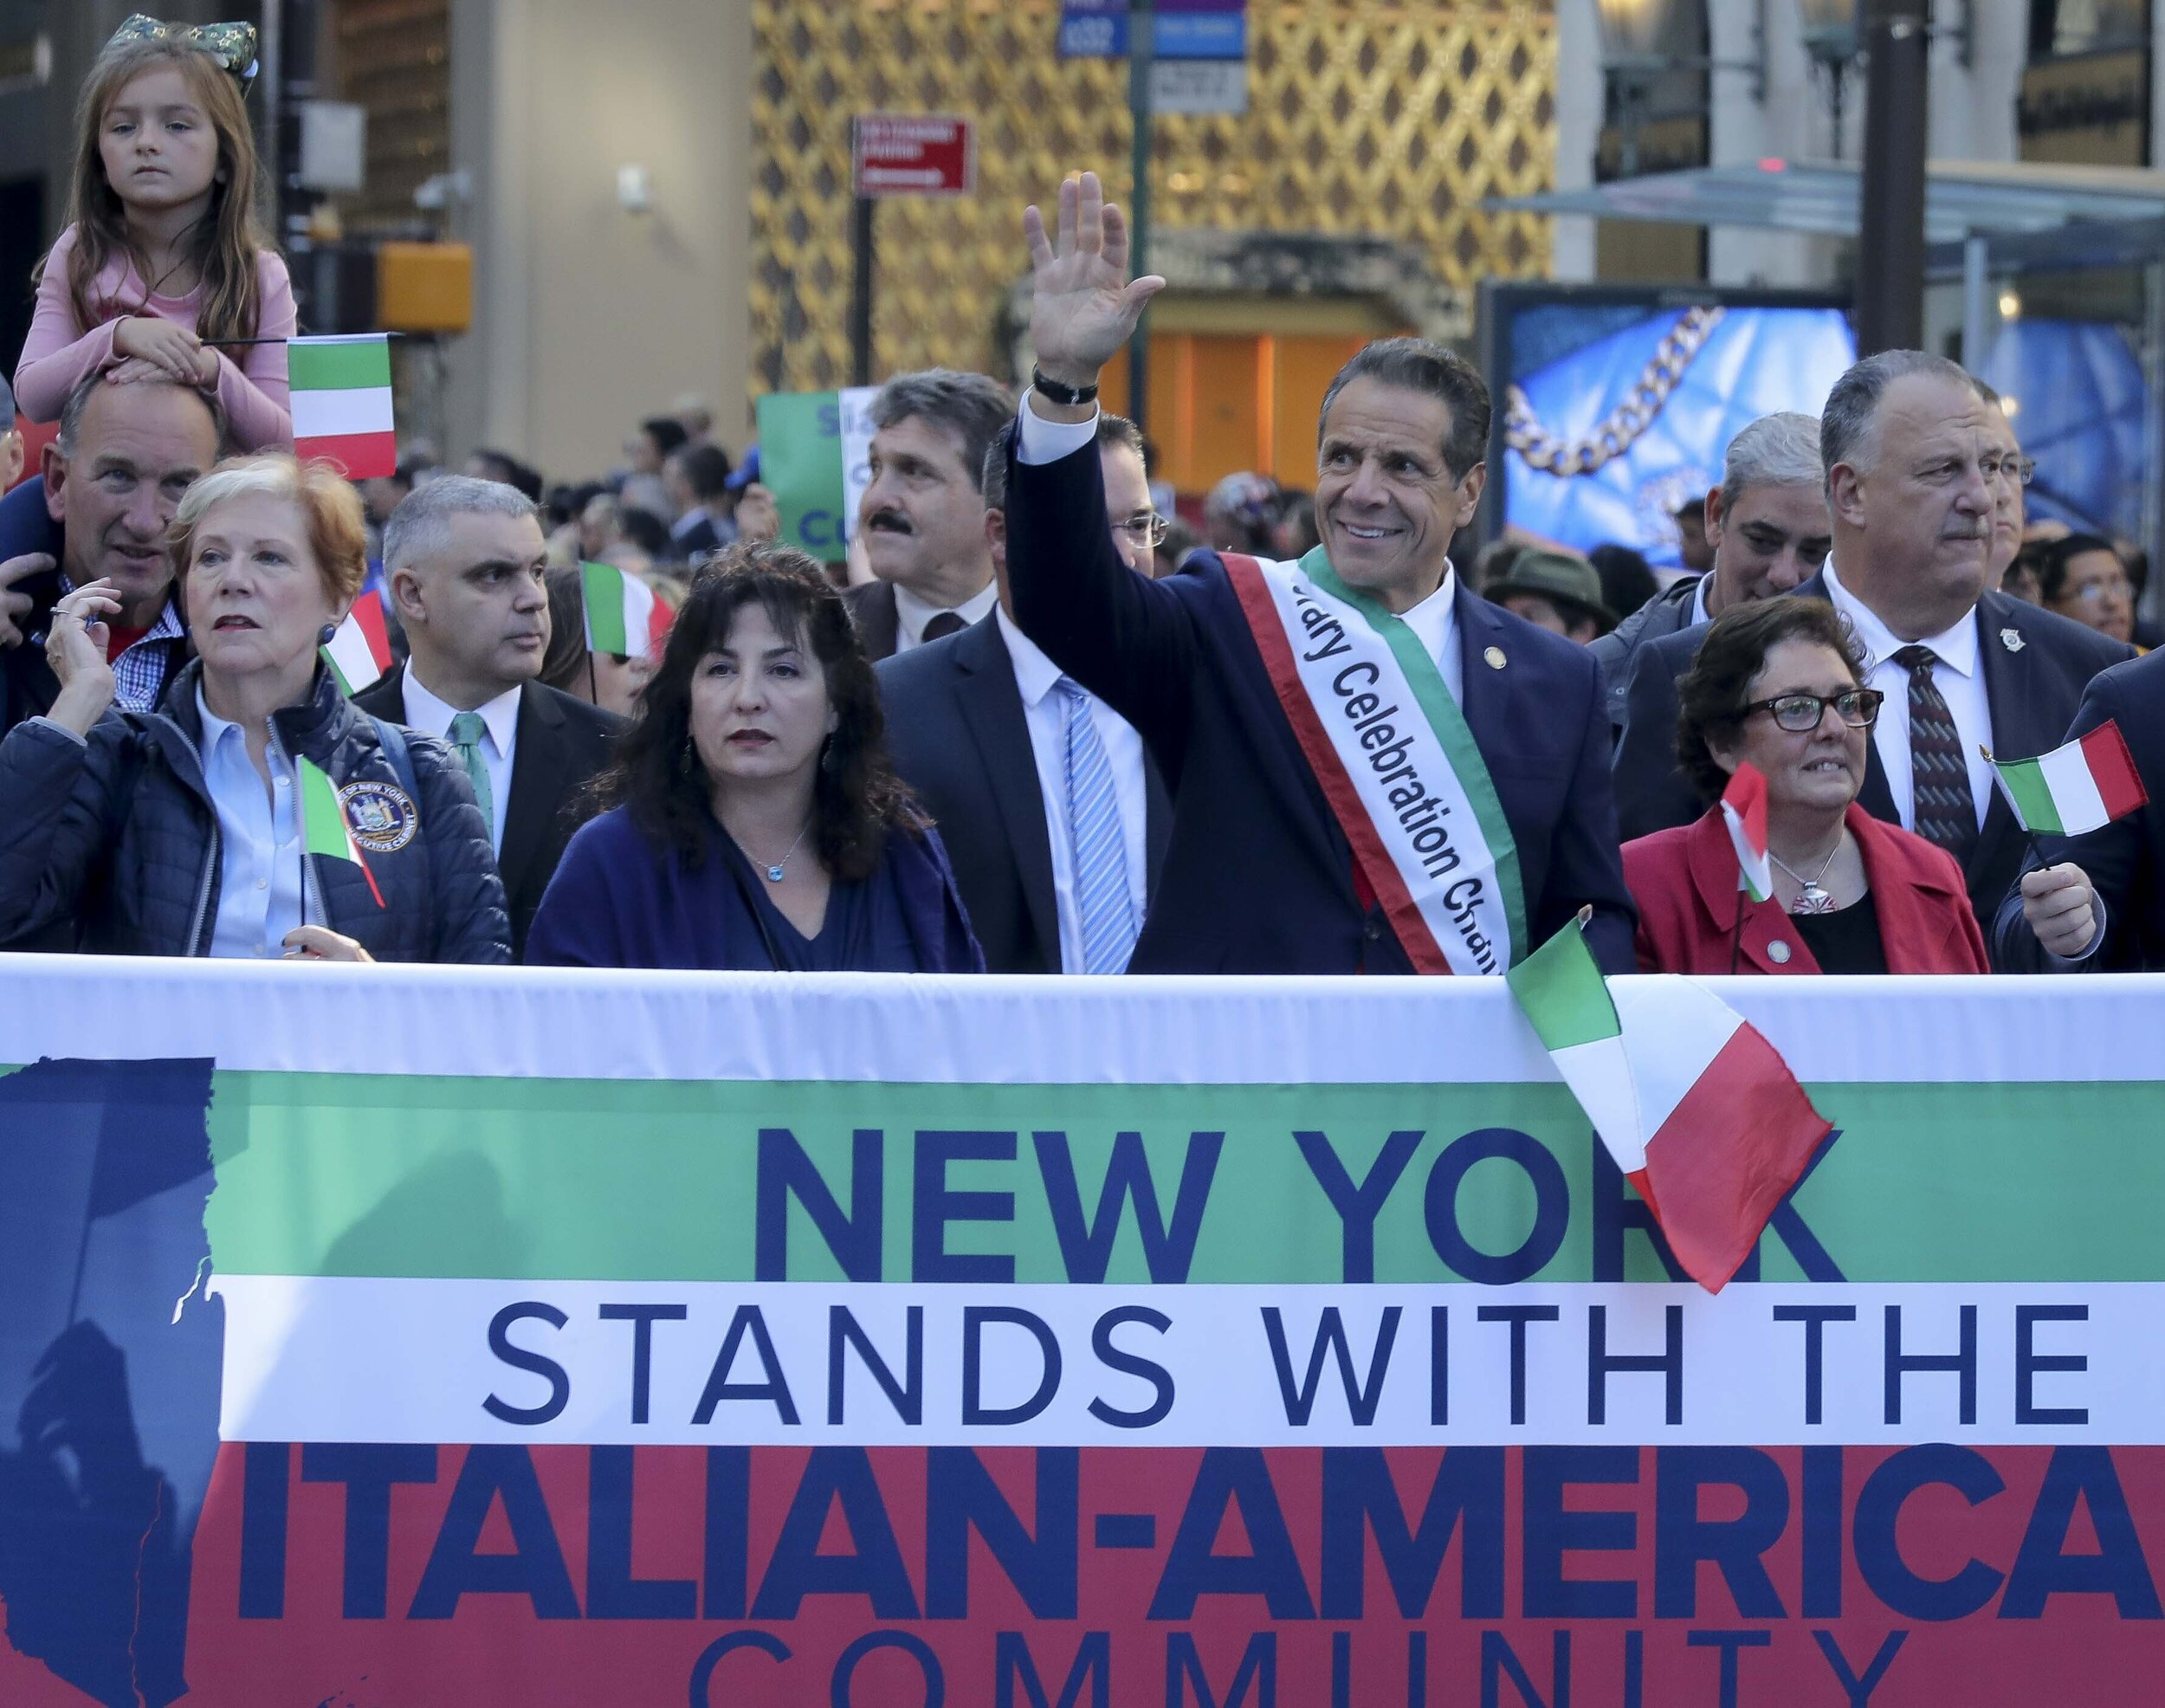 Gov. Andrew Cuomo, center, waves as he marches behind a banner with an entourage, during the Columbus Day Parade in Manhattan. Cuomo announced the same day that he would be establishing a state-led commision to construct a Cabrini statue. AP Photo/Bebeto Matthews.